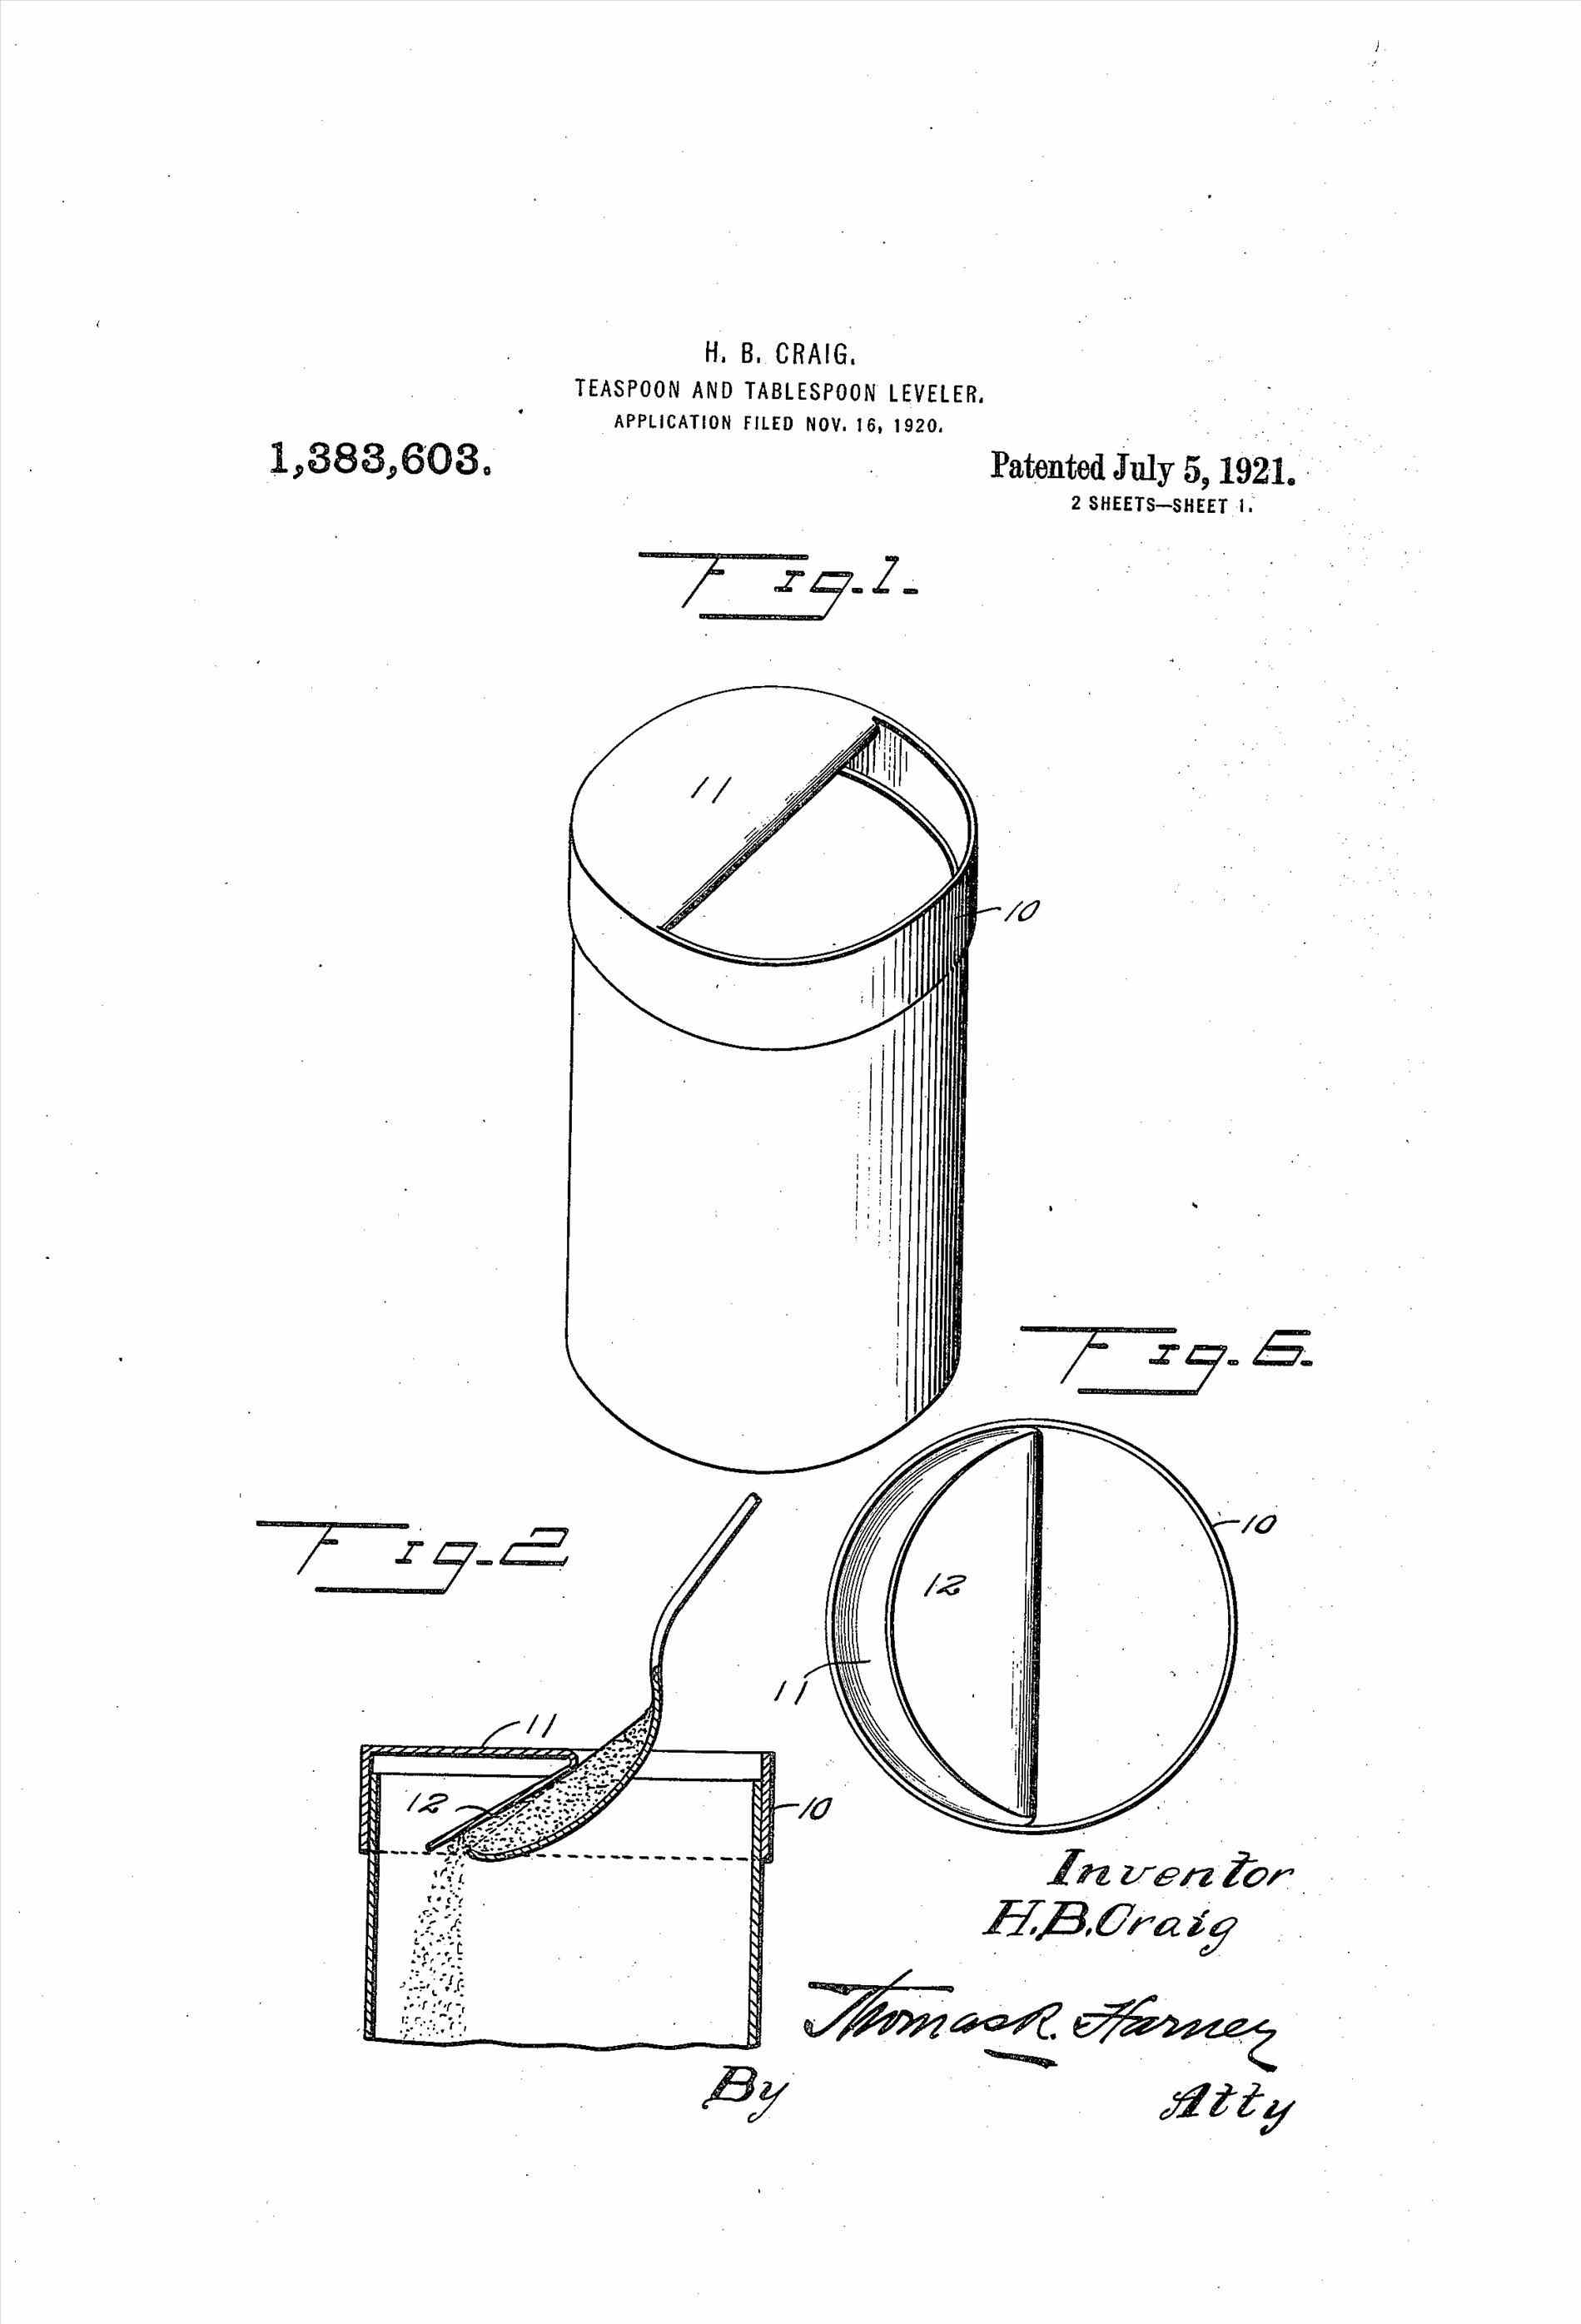 1899x2791 Spoon Amp Fork Stock Patent Us Scar Reducing And Massage Emollient